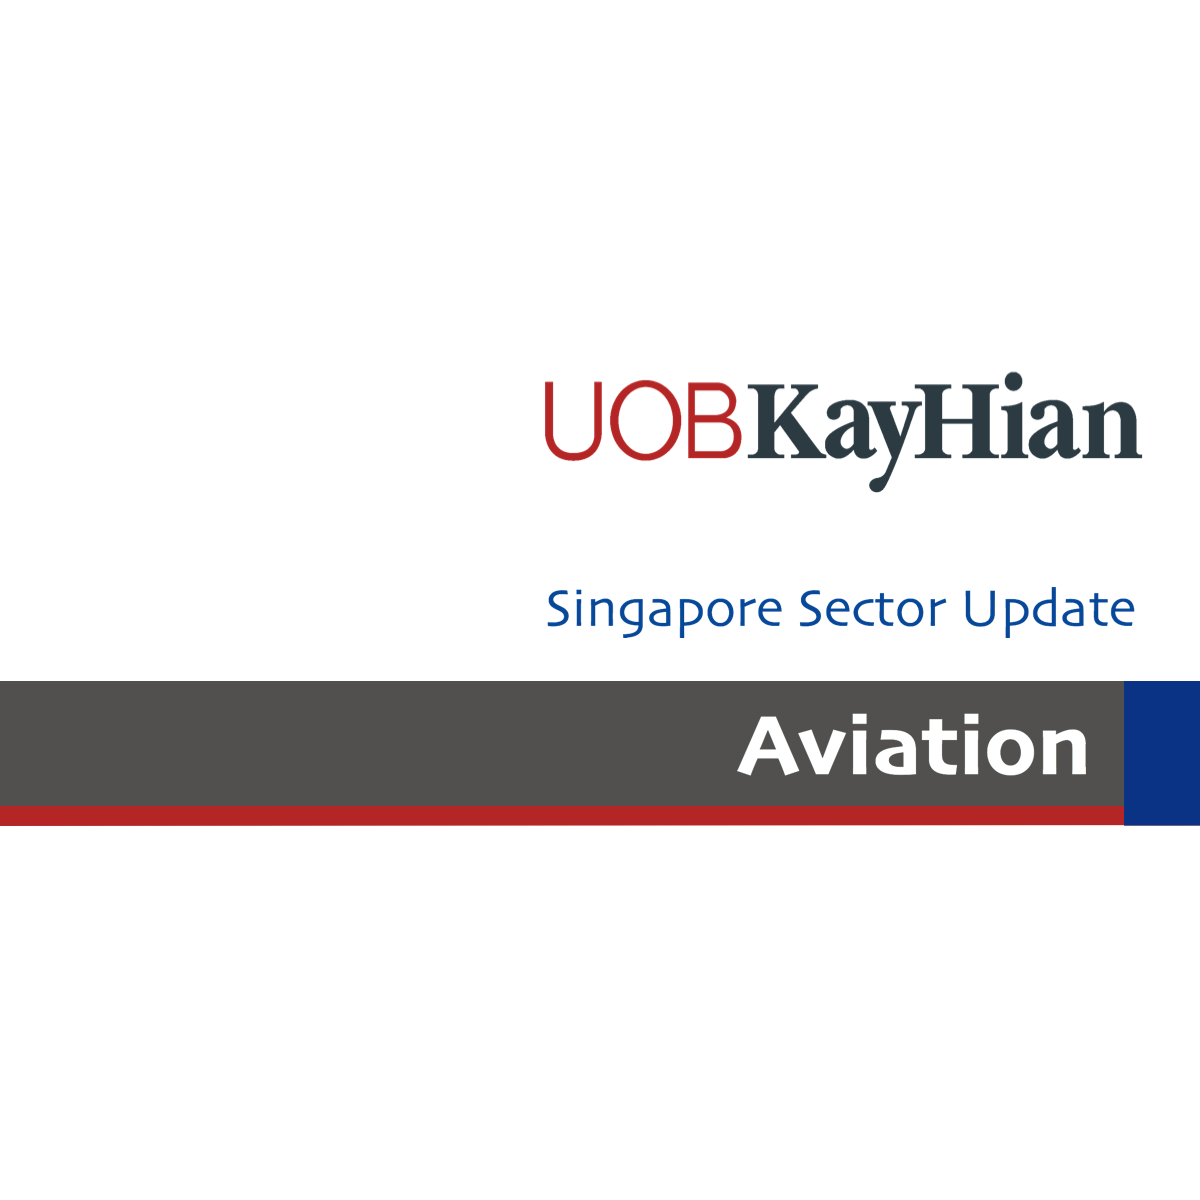 Aviation – Singapore - UOB Kay Hian 2017-10-27: Results Preview: Expect A Strong Quarter For SIA, STE And SATS, Upgrade STE To BUY